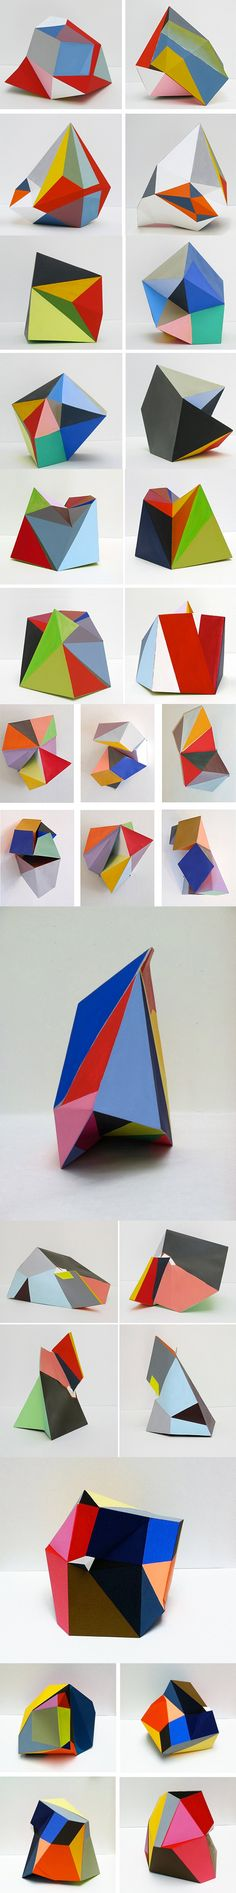 Paper sculptures by Lisa Hamilton.    via BOOOOOOOOM  www.booooooom.com/2011/10/14/paper-sculptures-by-artist-lisa-hamilton/